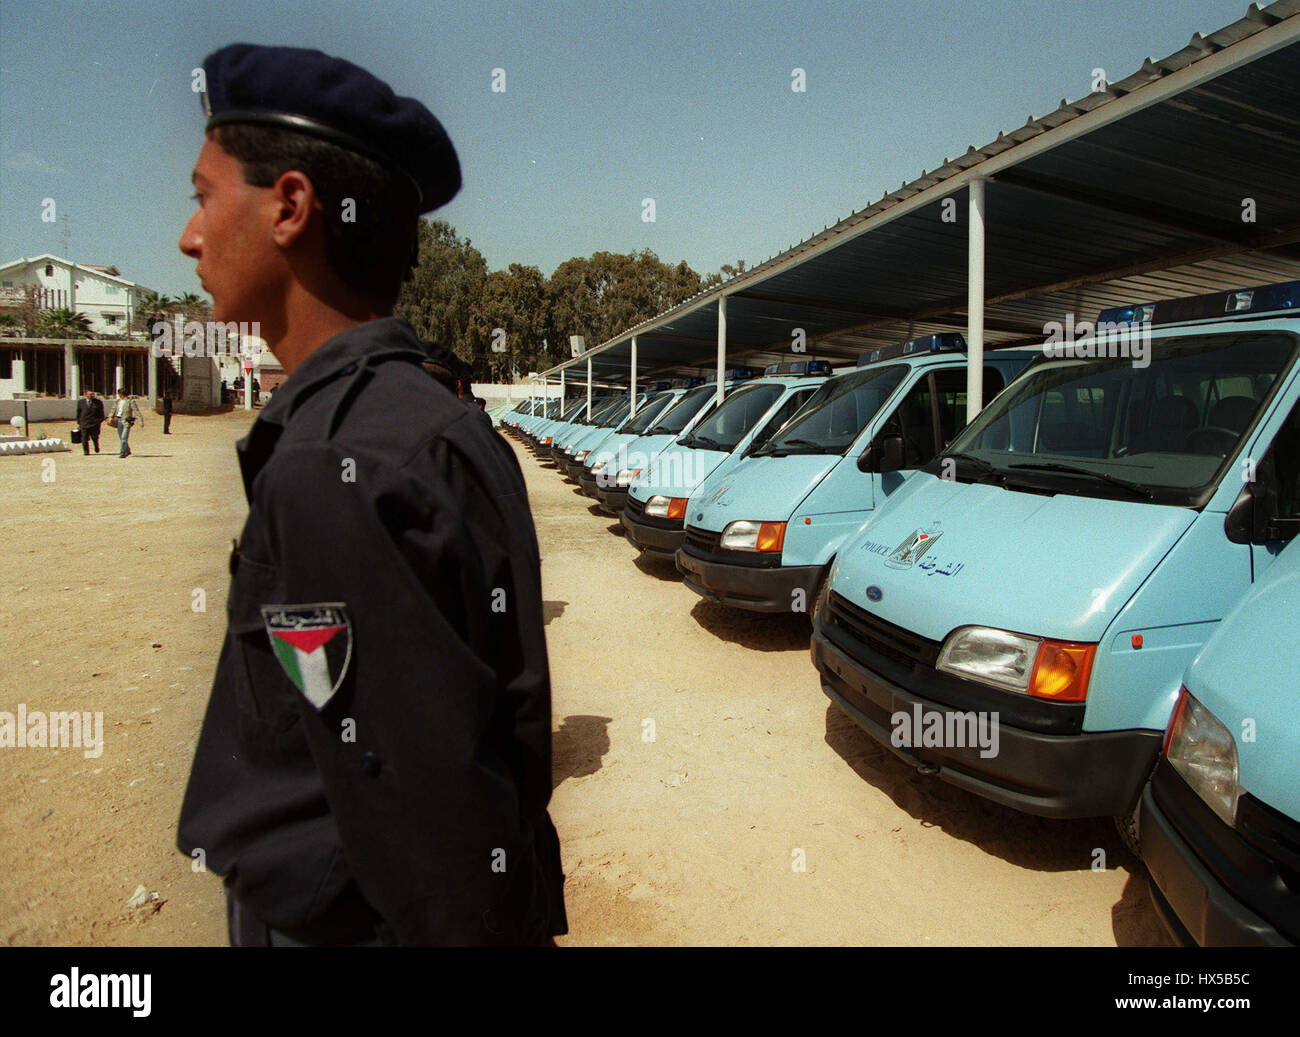 GAZA CIVILIAN POLICE WITH BRIT. DONATED POLICE VEHICLES 29 March 1995 - Stock Image